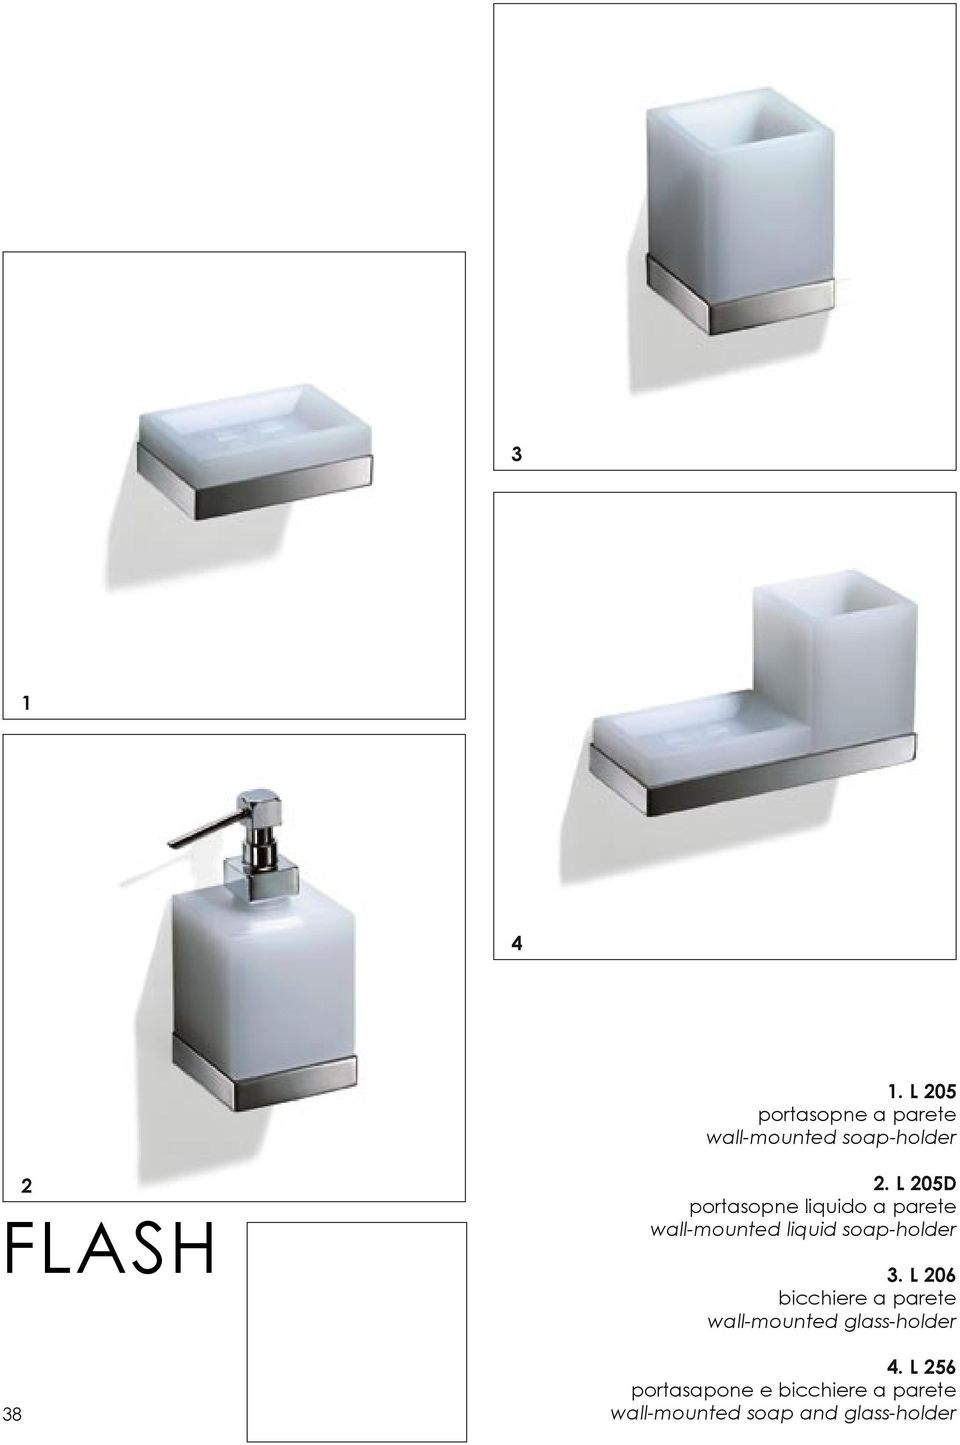 3. L 206 bicchiere a parete wall-mounted glass-holder 4.